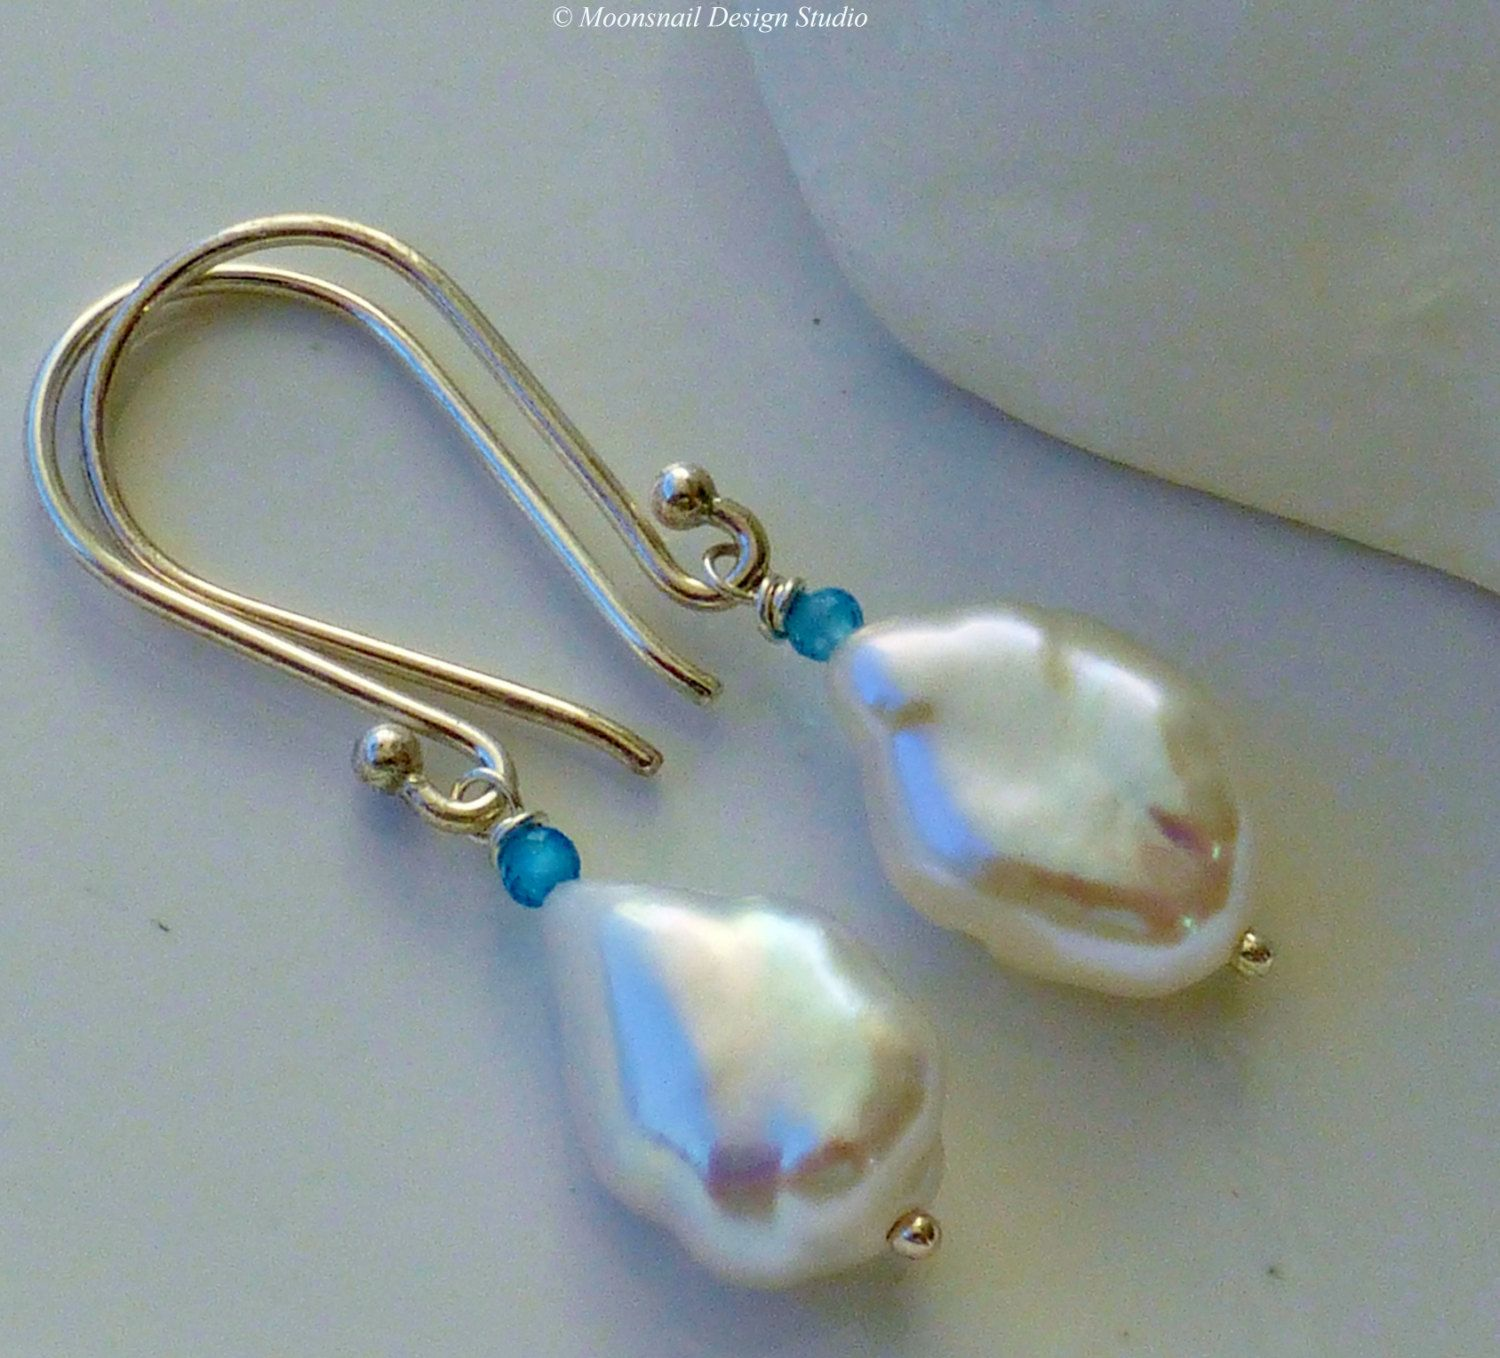 White Keshi Pearl Earrings Peacock Blue Apatite ~ Blue Sky by Moonsnail Design Studio